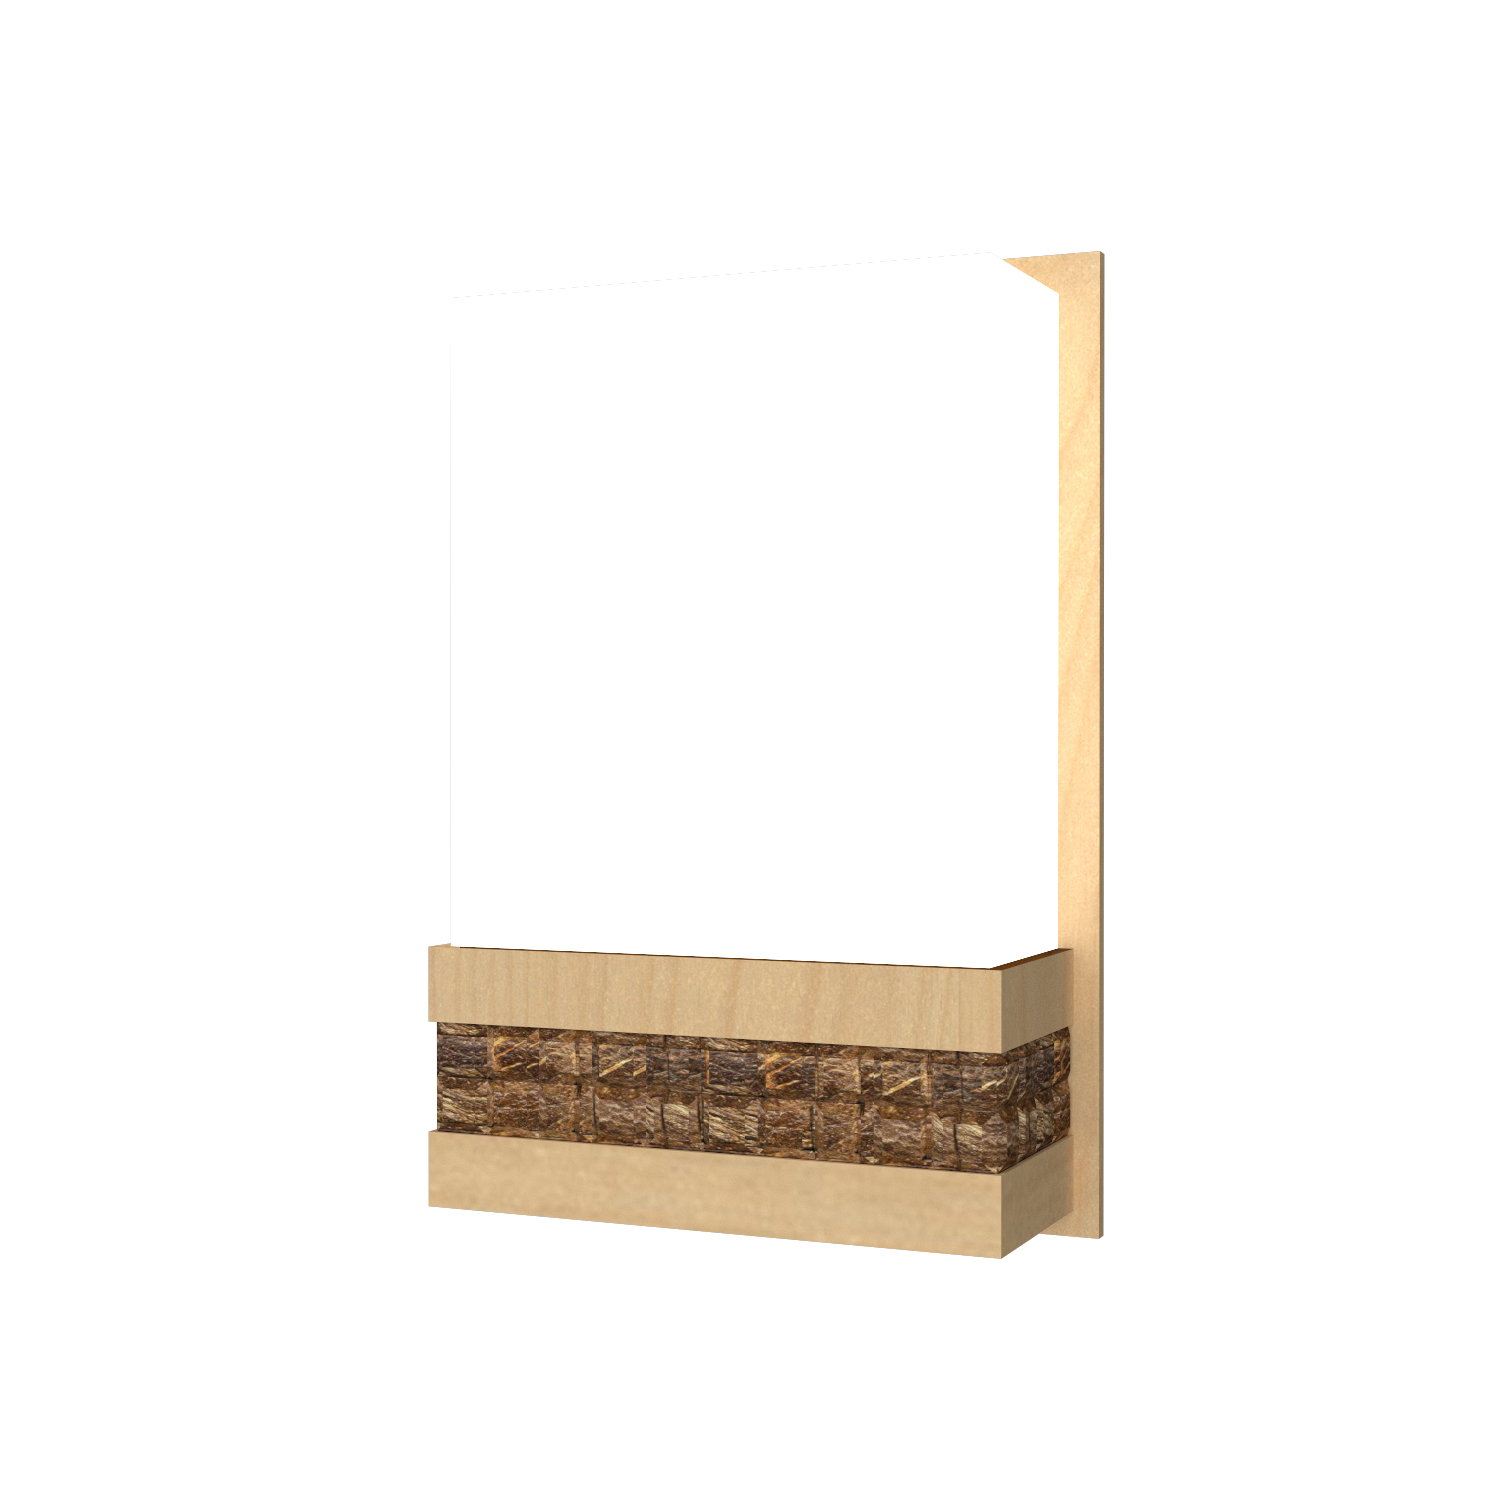 Wall Lamp Accord Pastilhada 443 - Pastilhada Line Accord Lighting | 34. Maple